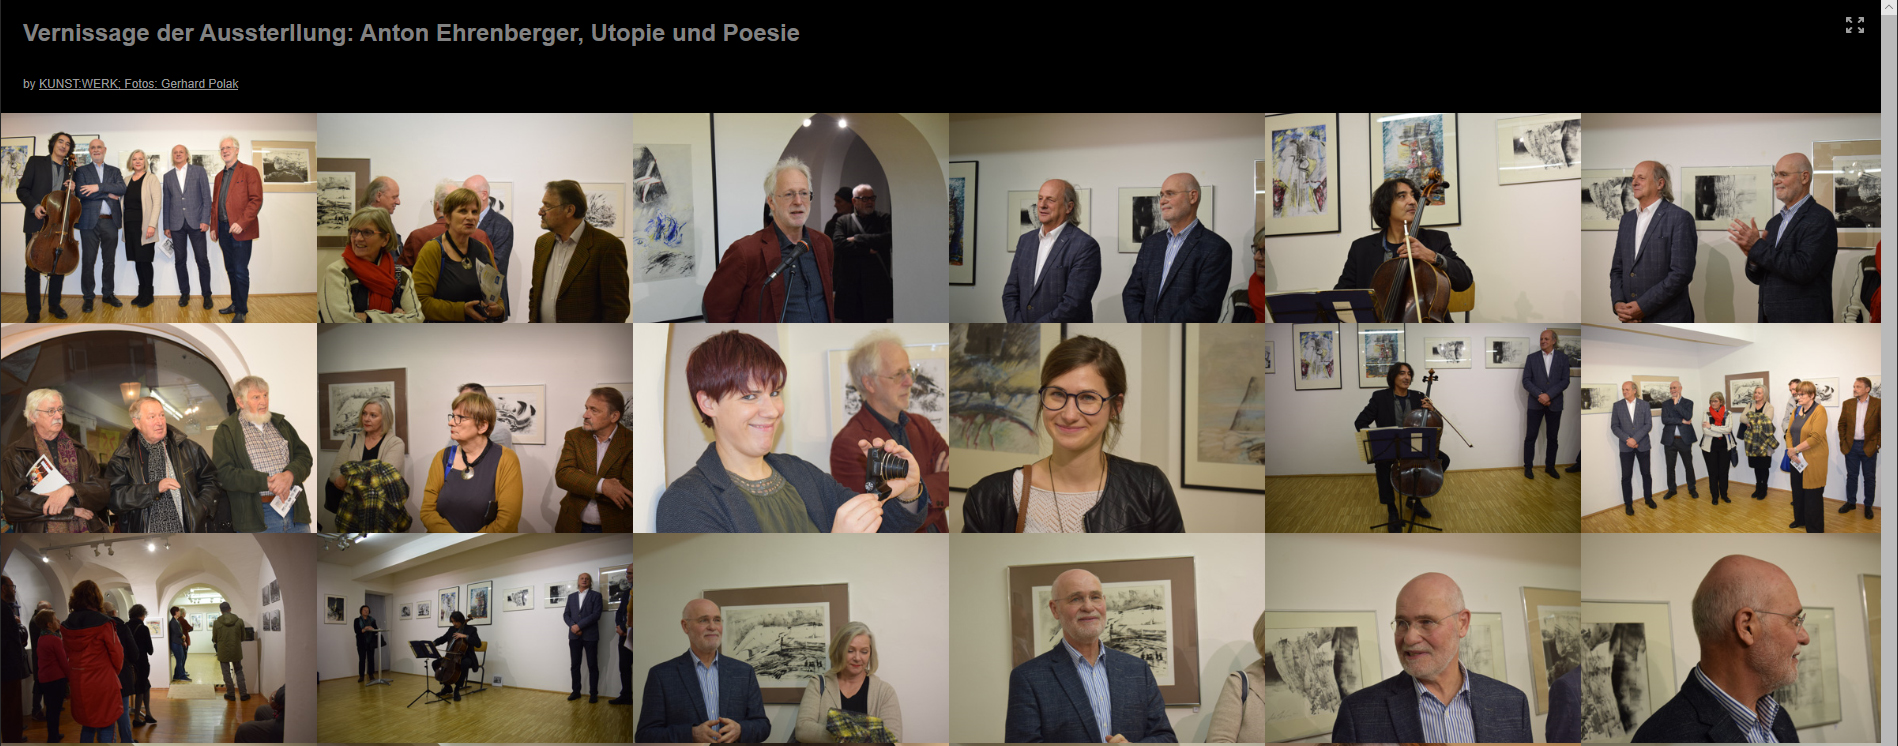 Webgalerie-Vernissage-Ehrenberger